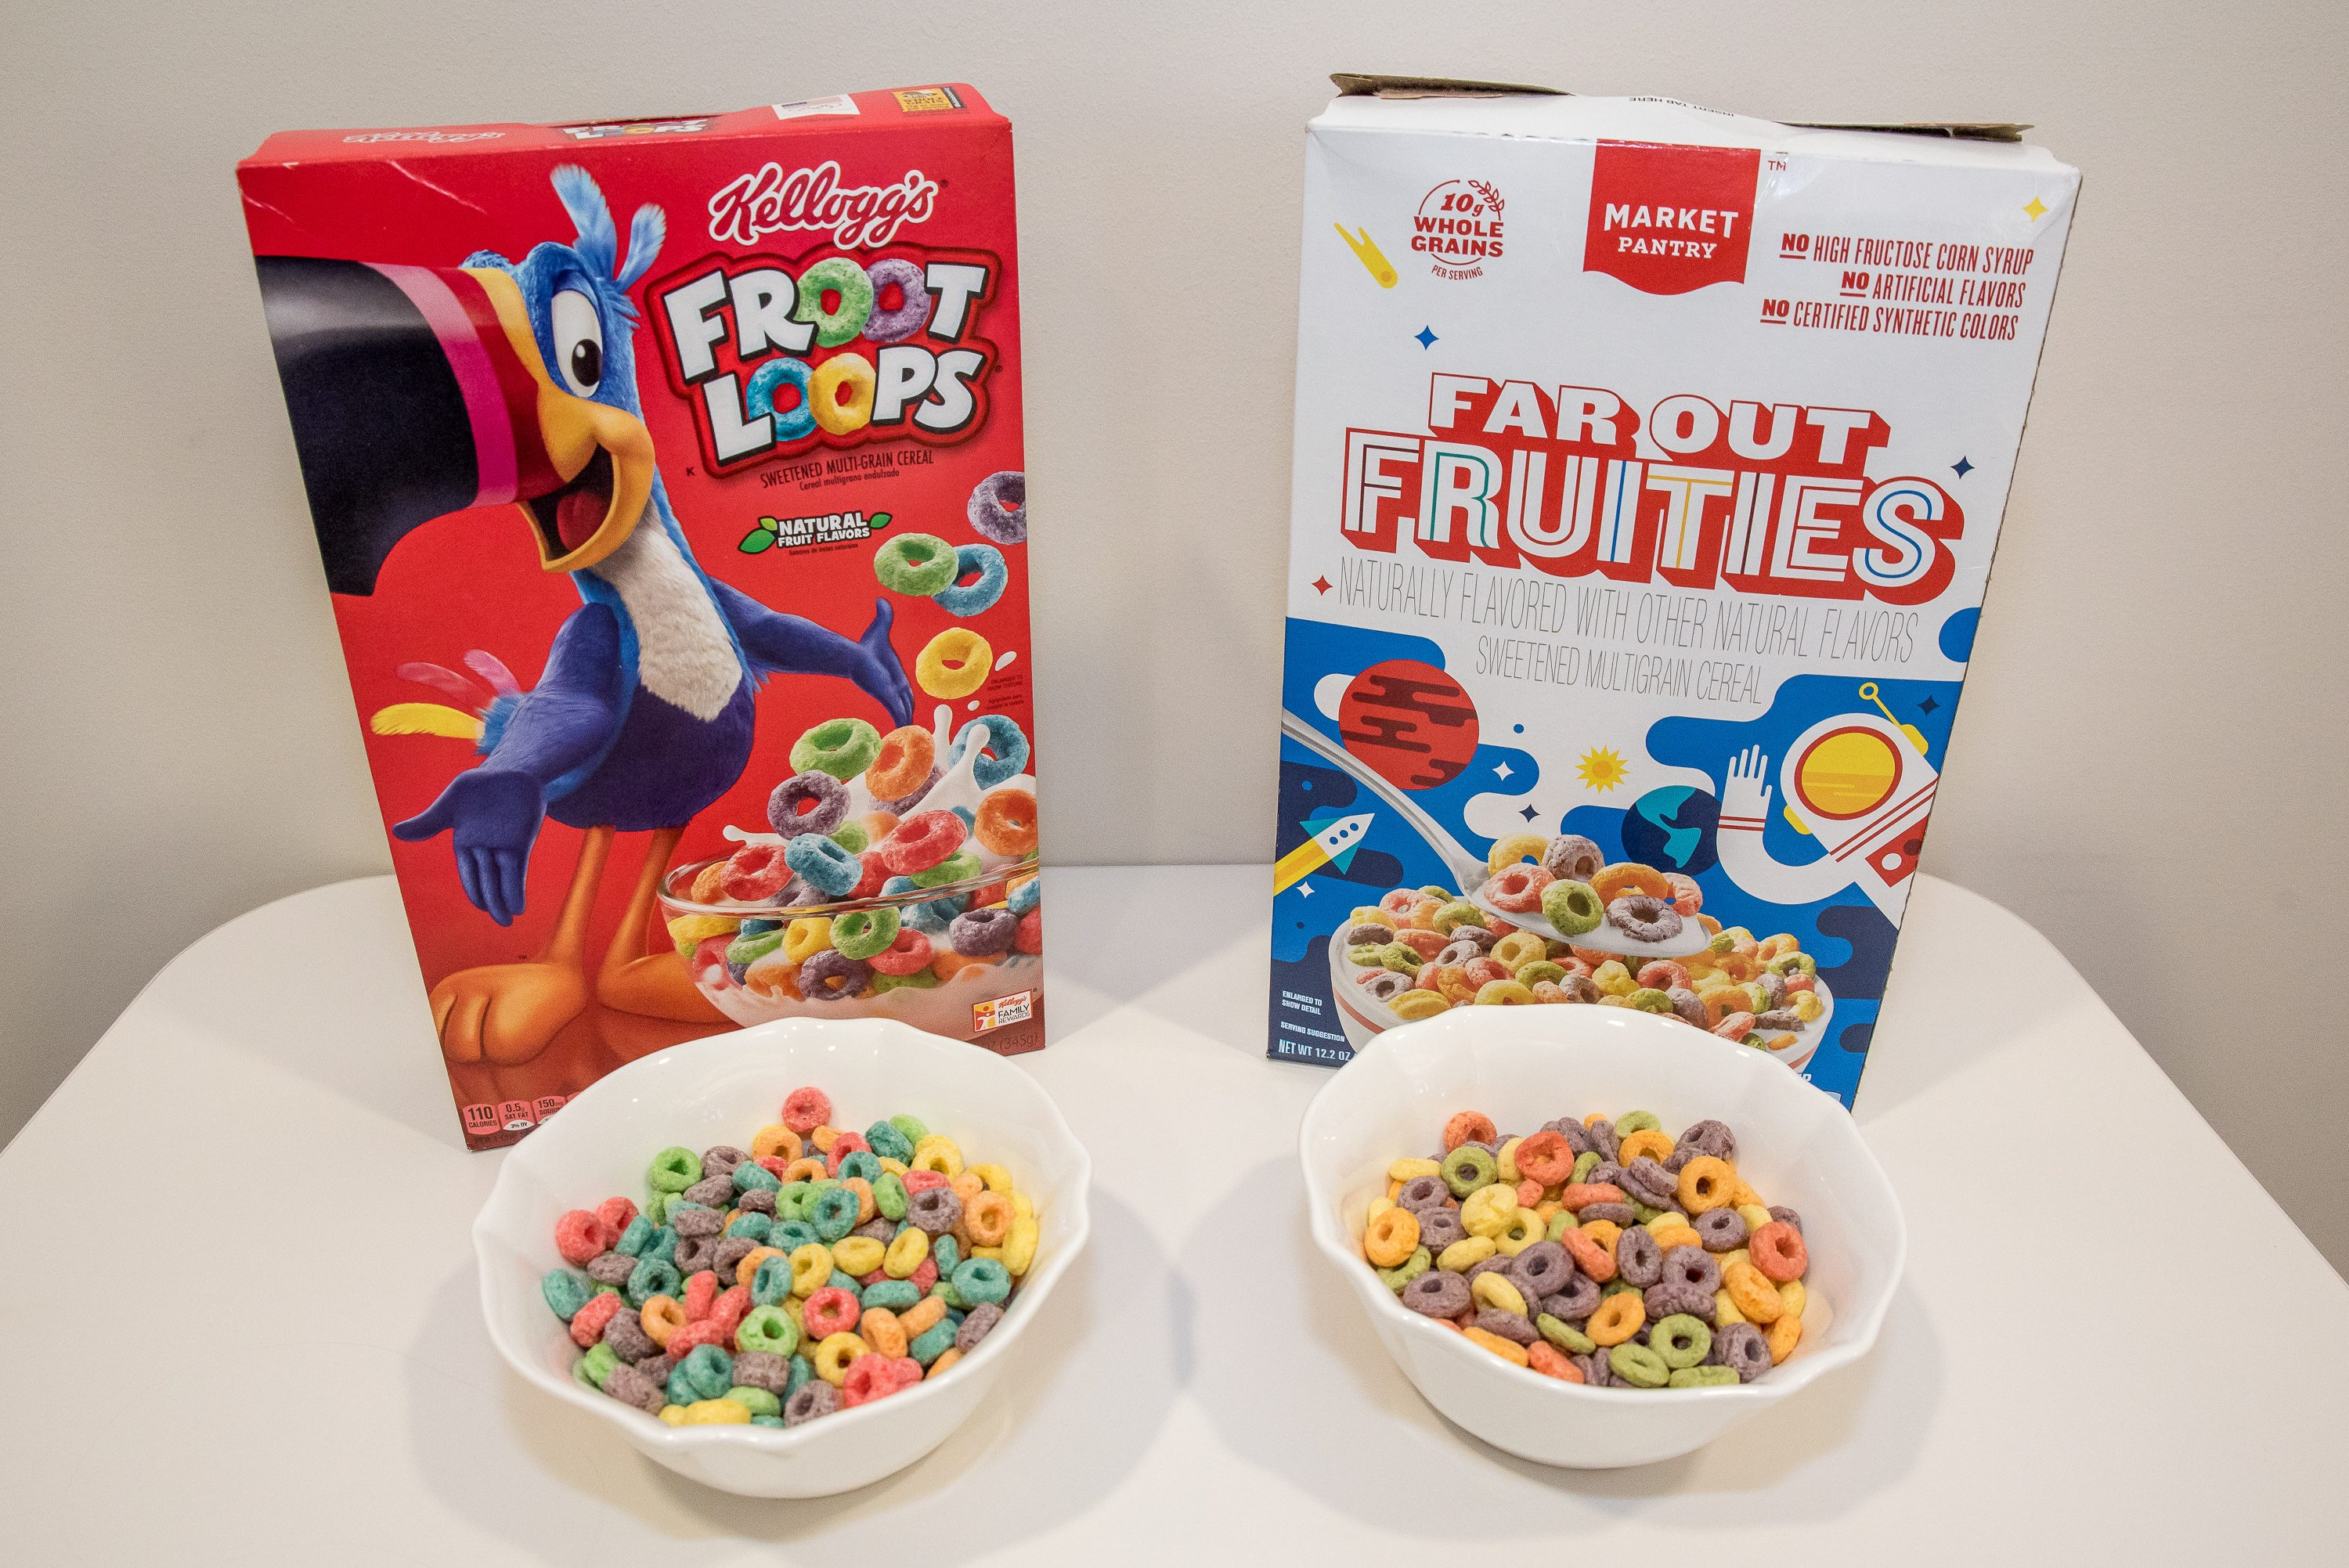 kellogg's froot loops vs market pantry far our fruities cereal generic vs name brand cereal